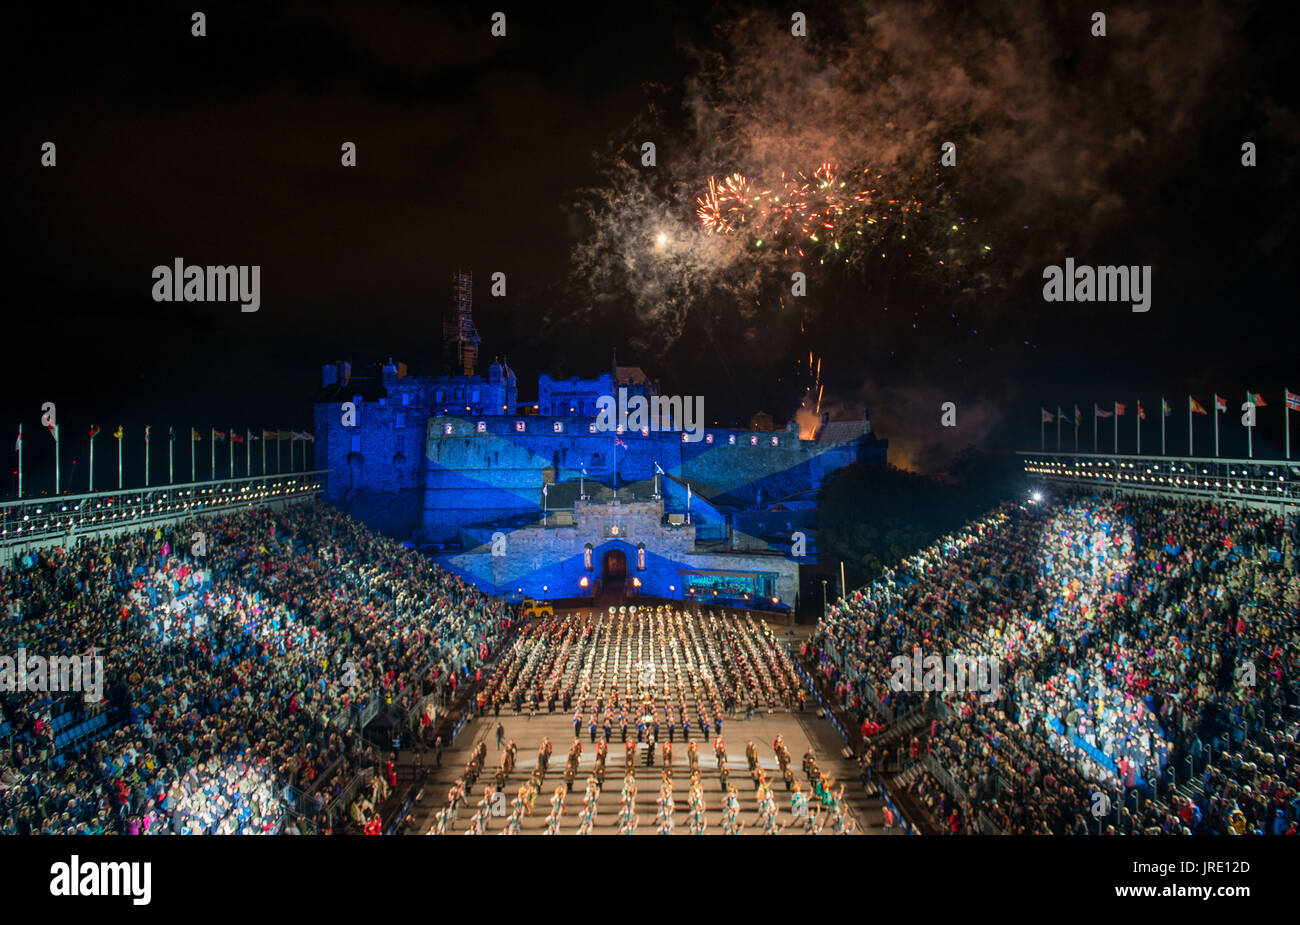 Royal edinburgh military tattoo 2017 stock photos royal for Royal edinburgh military tattoo